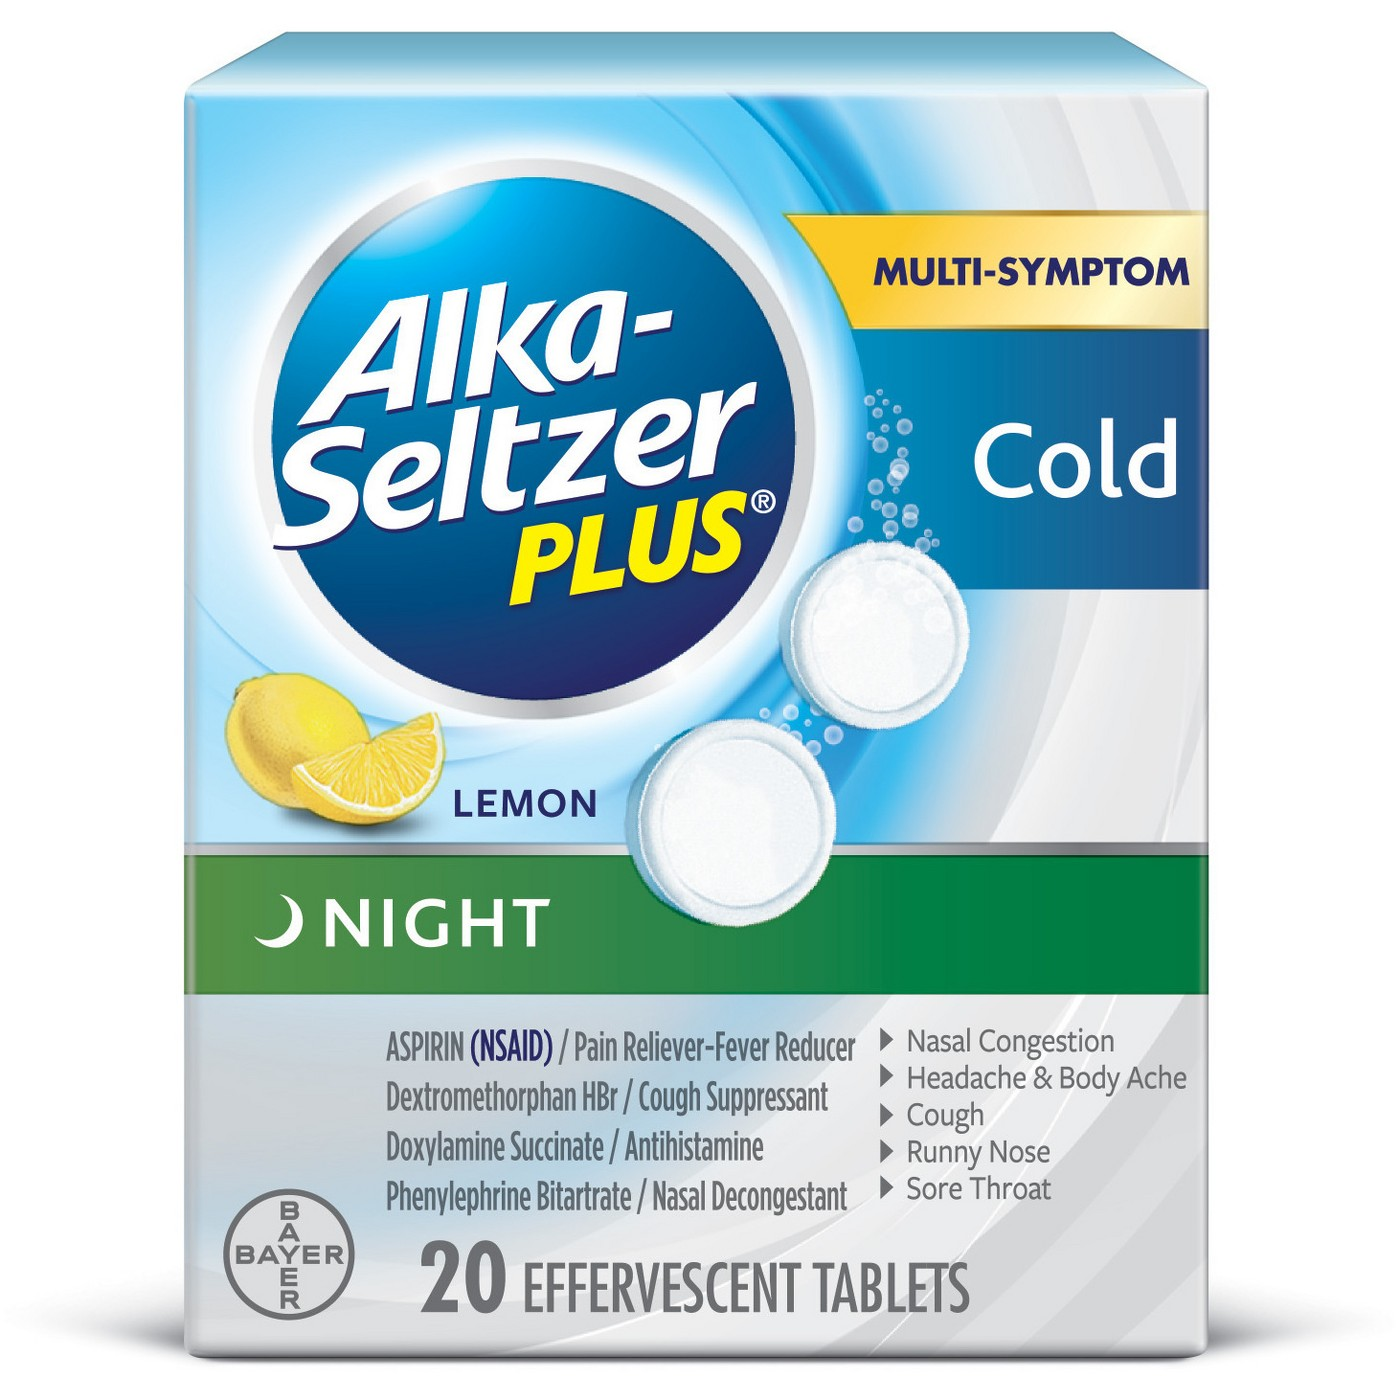 Alka-Seltzer Plus Cold Night Lemon - 20 Effervescent Tablets